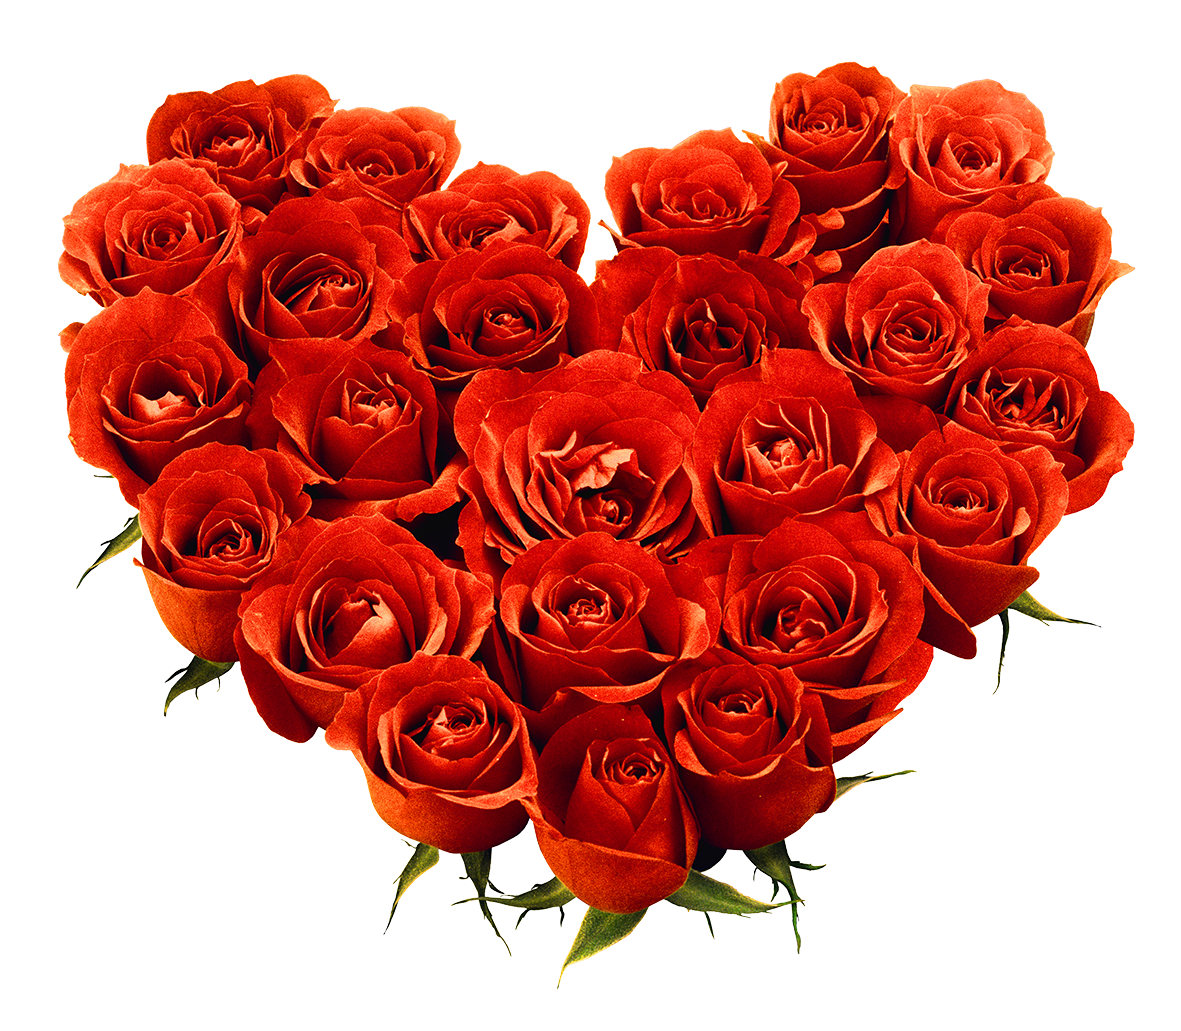 Rose Png Clipart Best